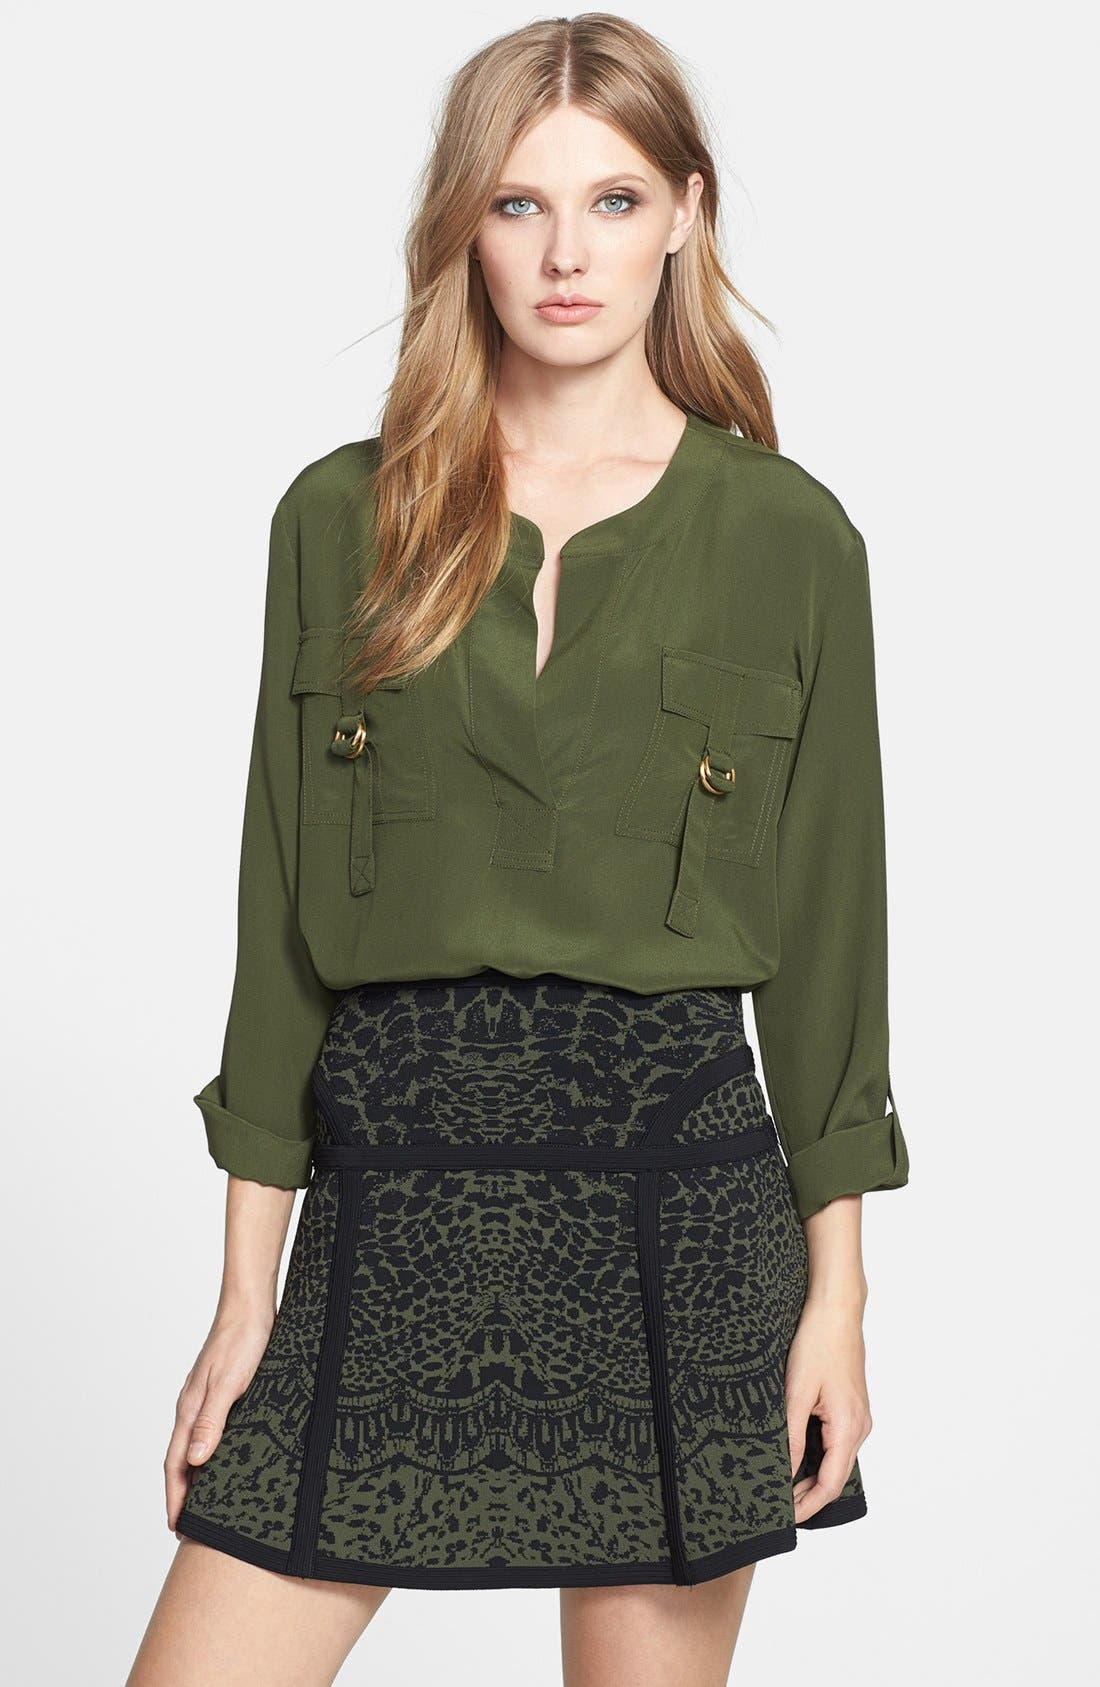 Alternate Image 1 Selected - Diane von Furstenberg 'Danielle' Silk Blouse